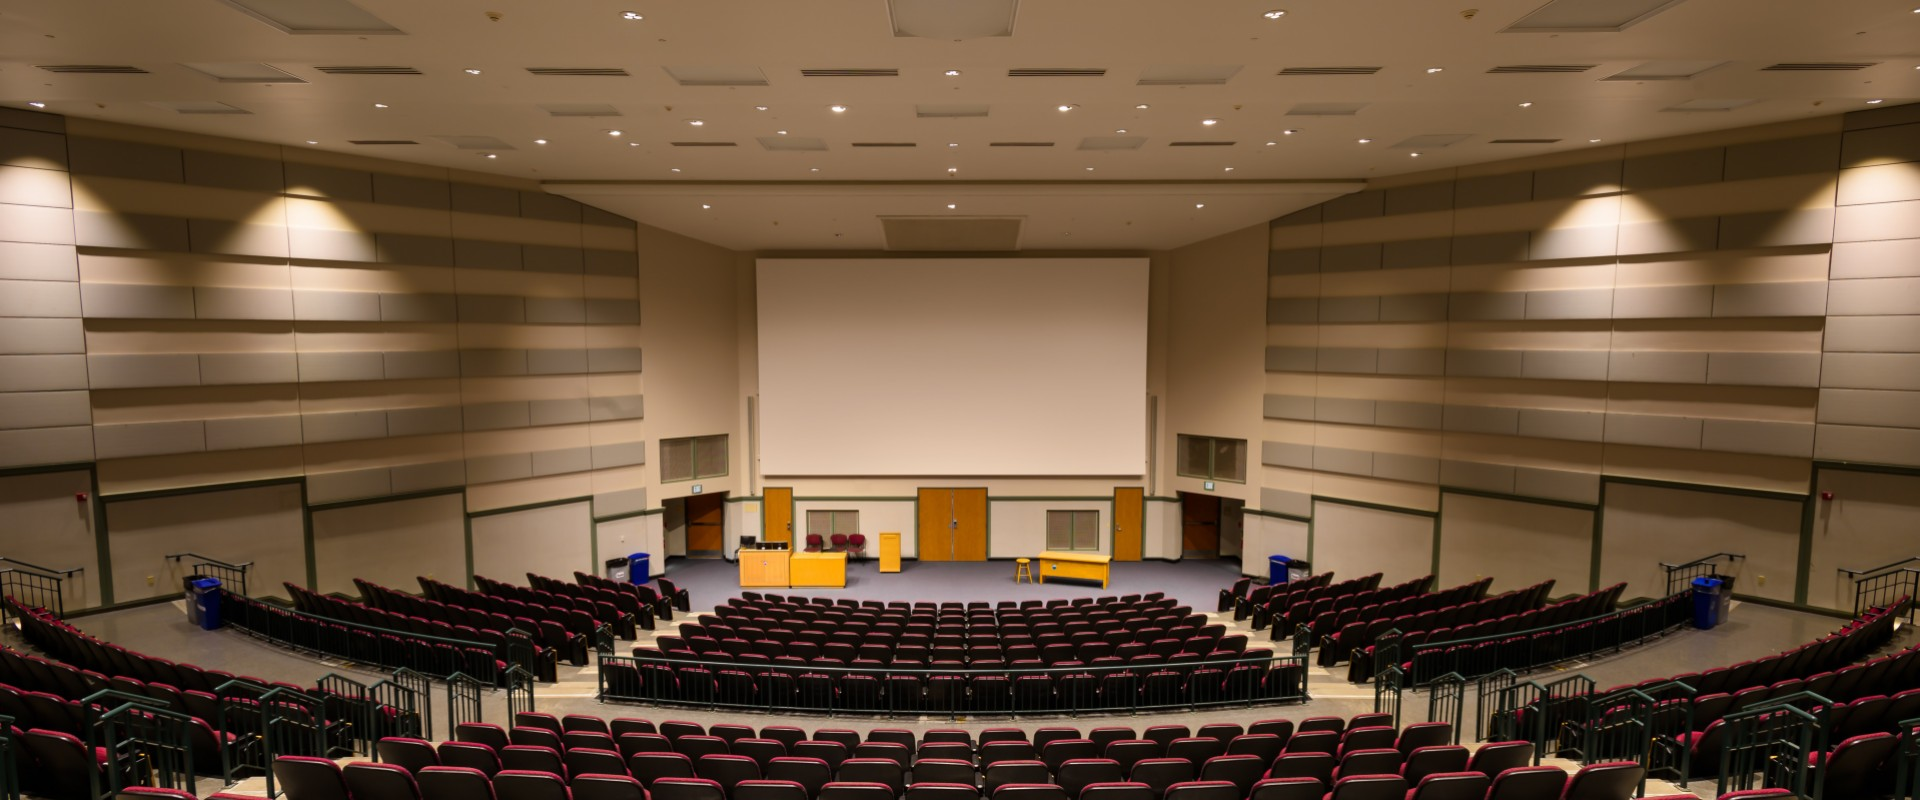 Penn State lecture hall back view